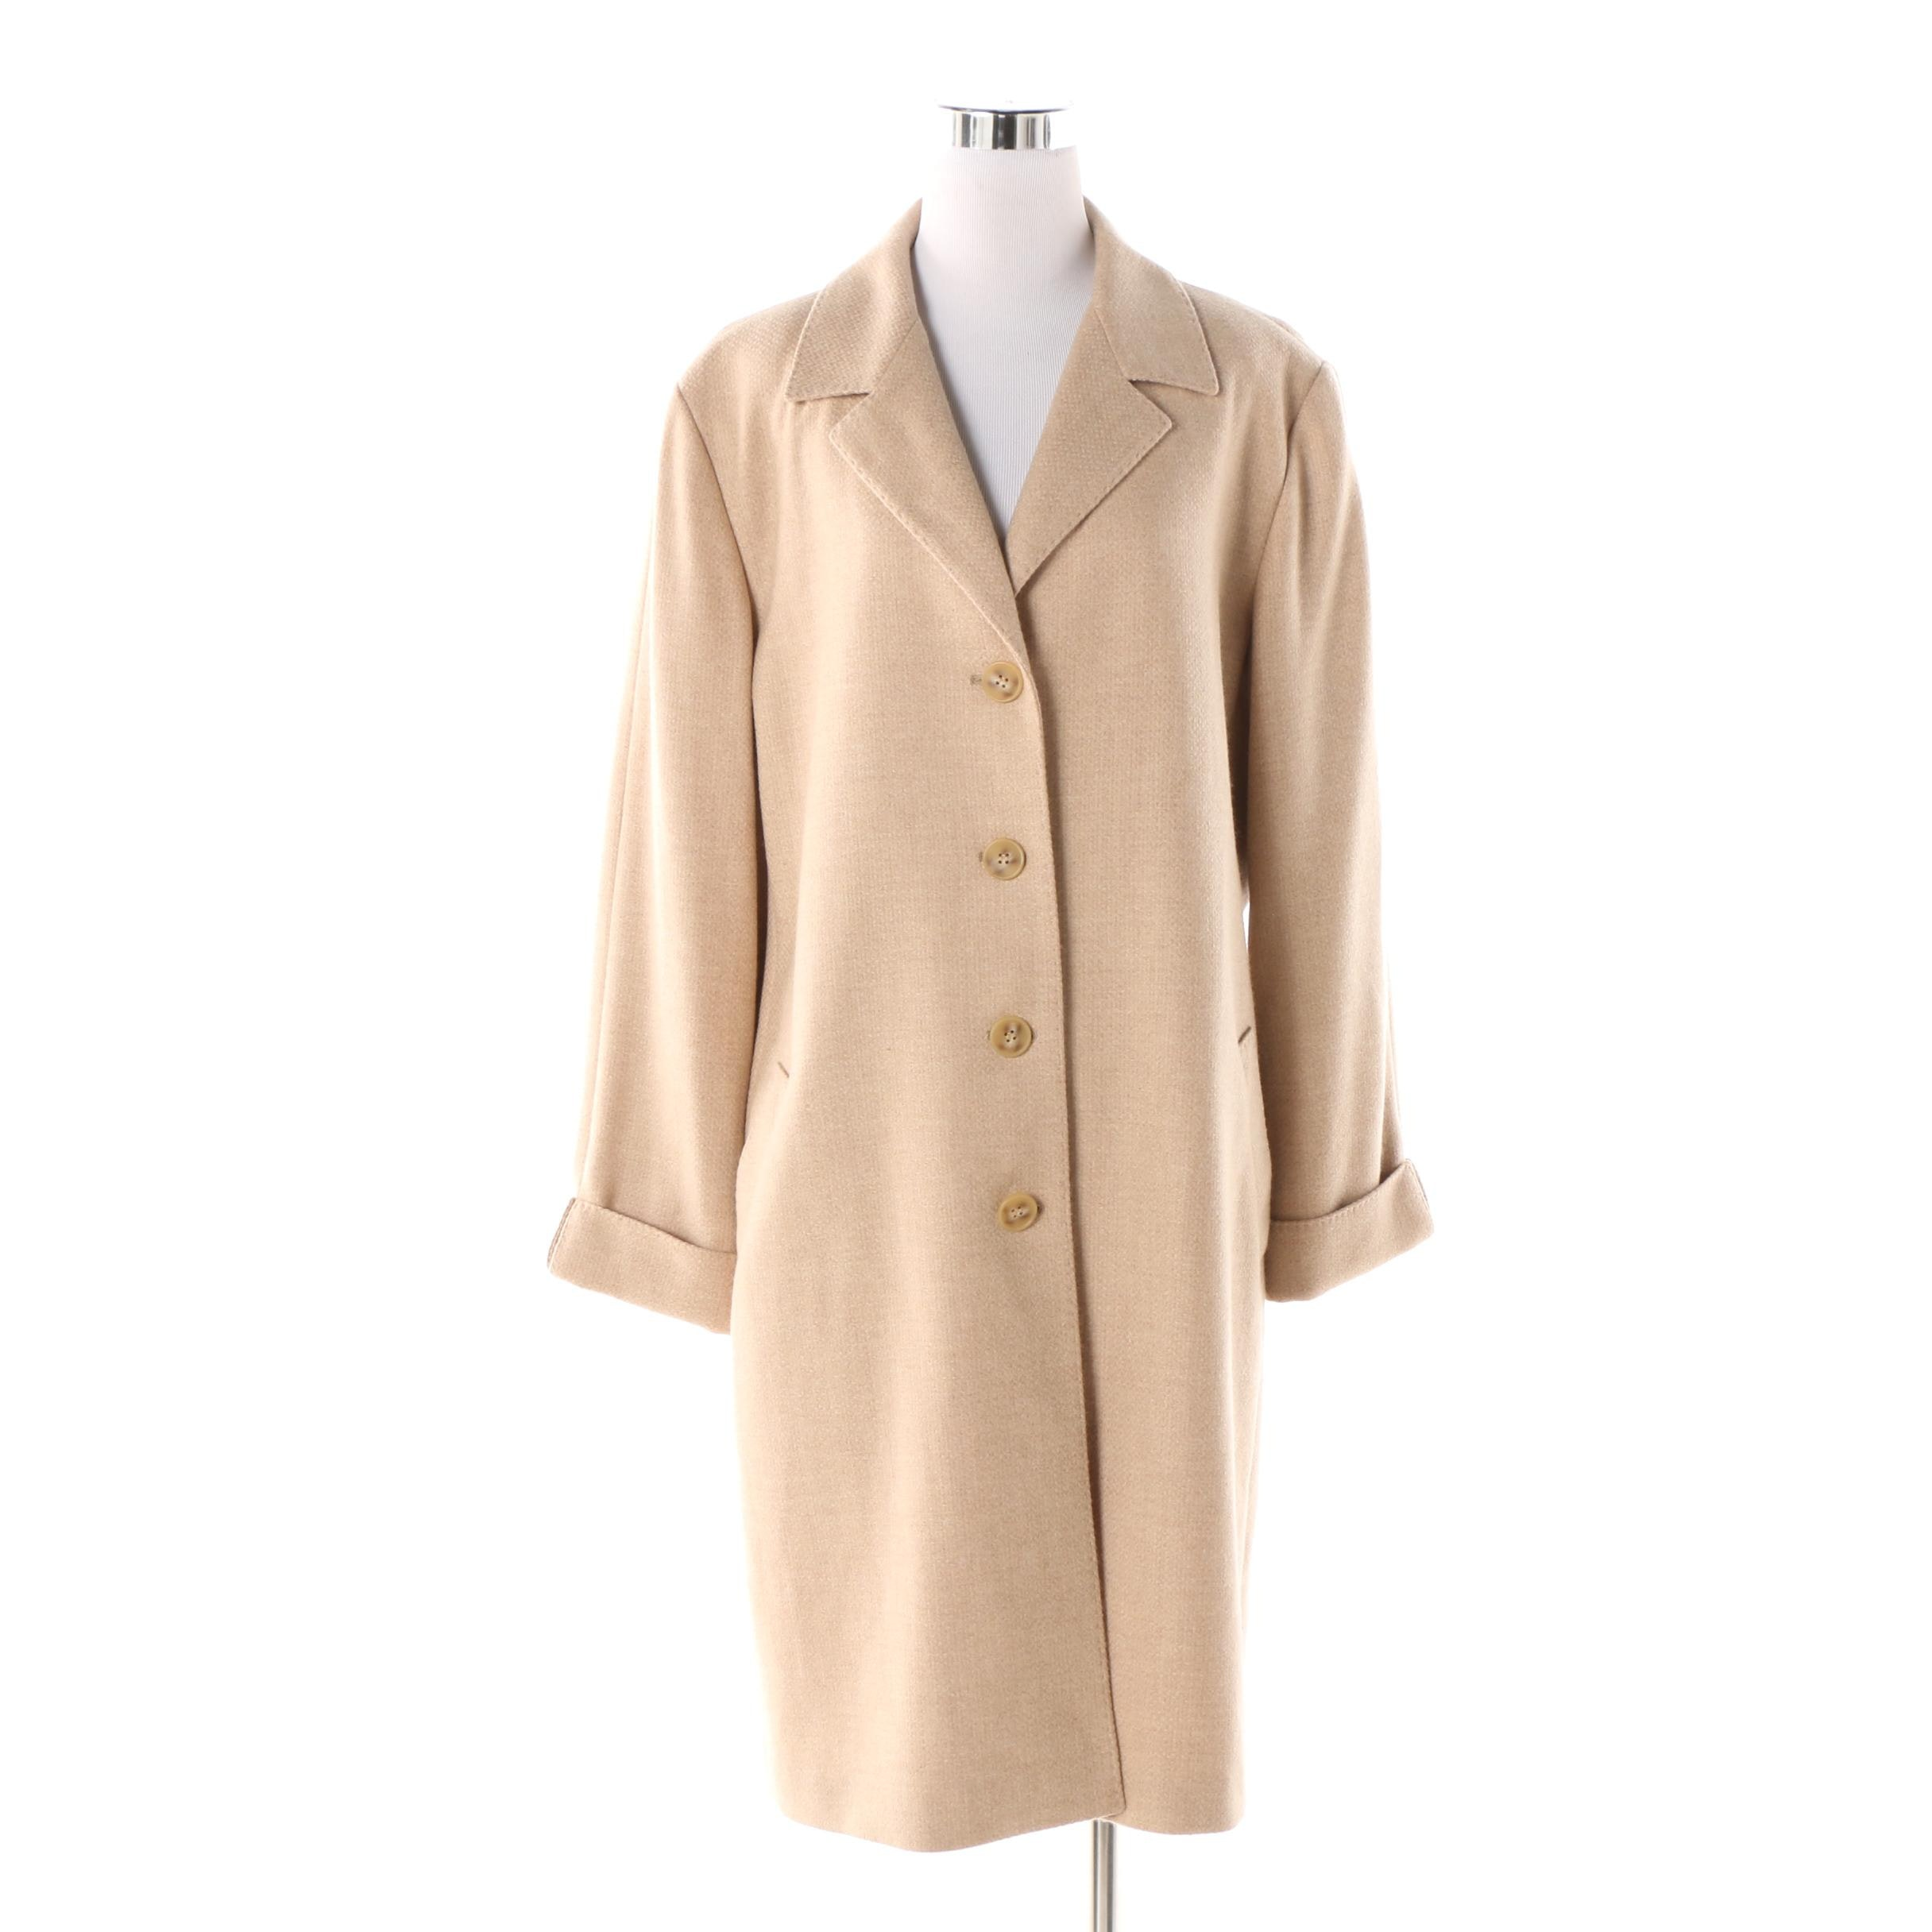 Women's Lafayette 148 New York Beige Wool and Cashmere Blend Coat